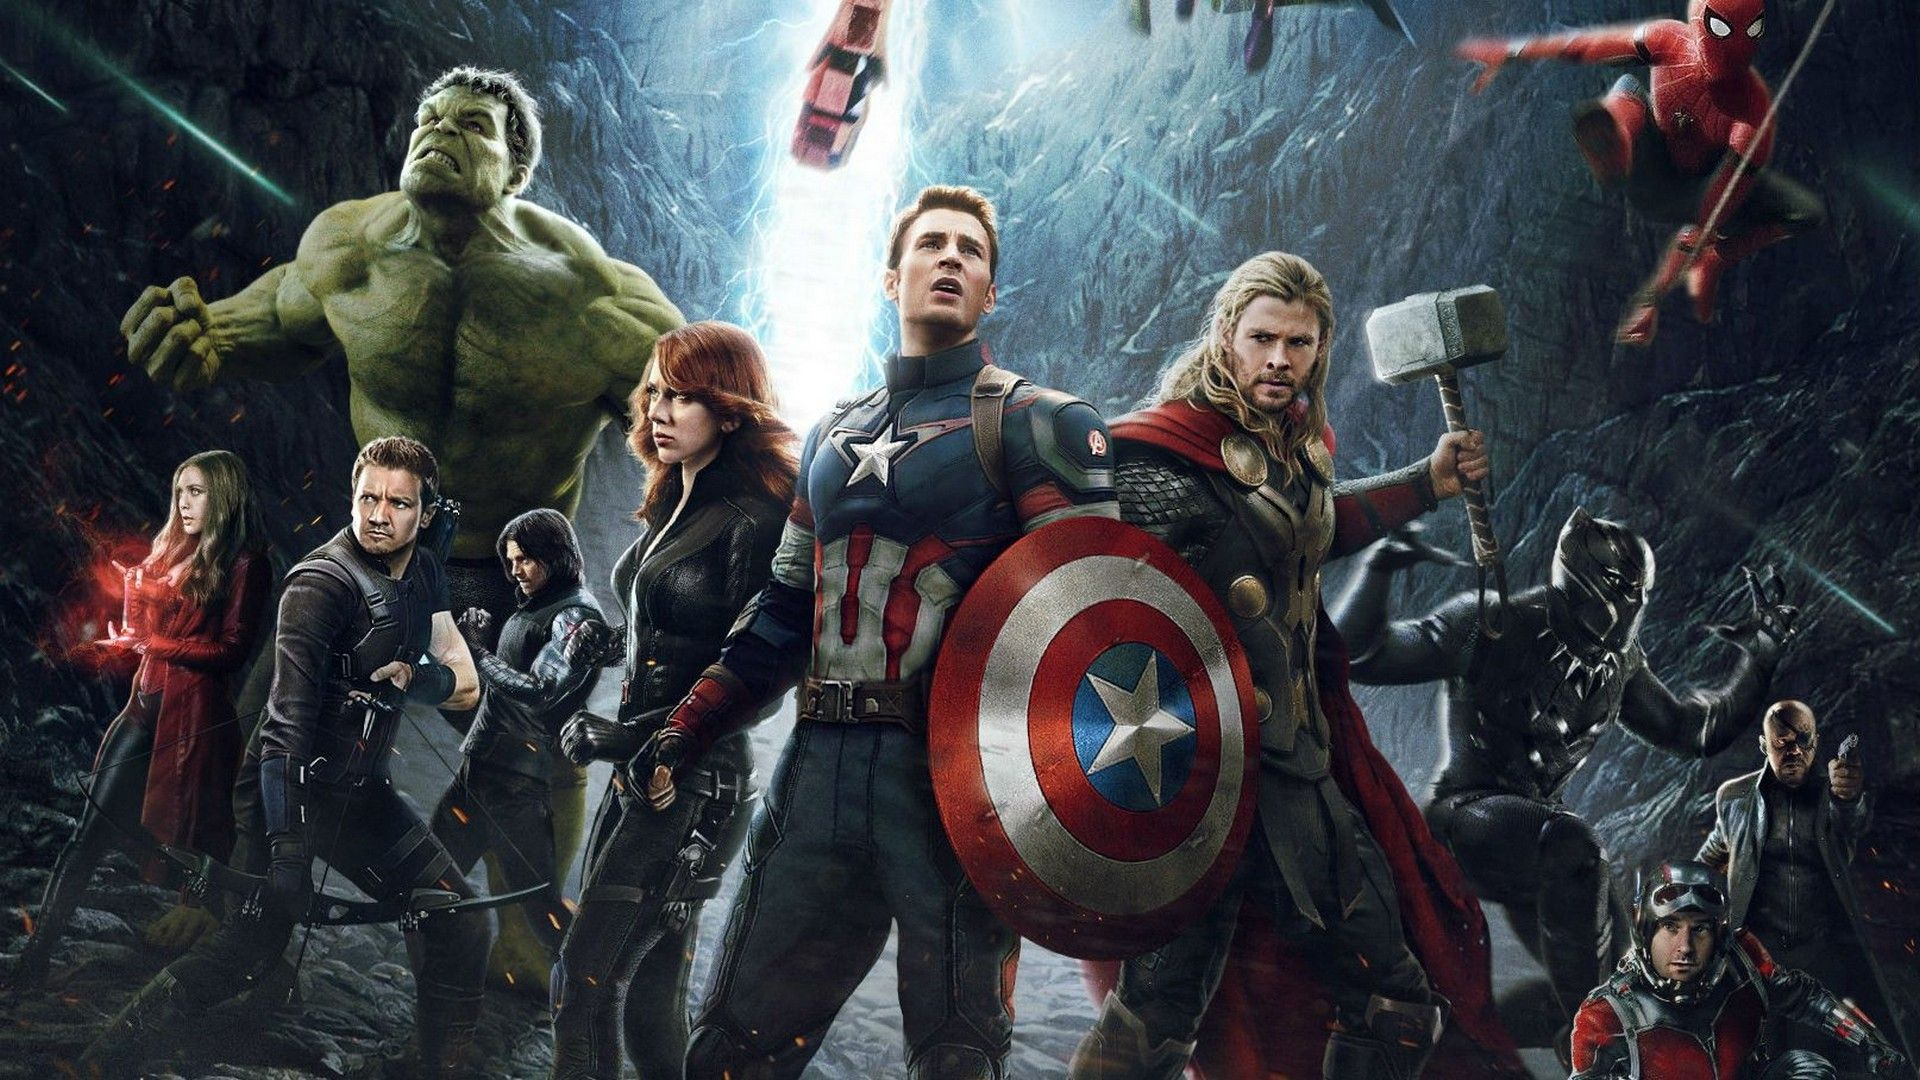 Wallpaper Avengers Infinity War Characters Best HD Wallpapers 1920x1080